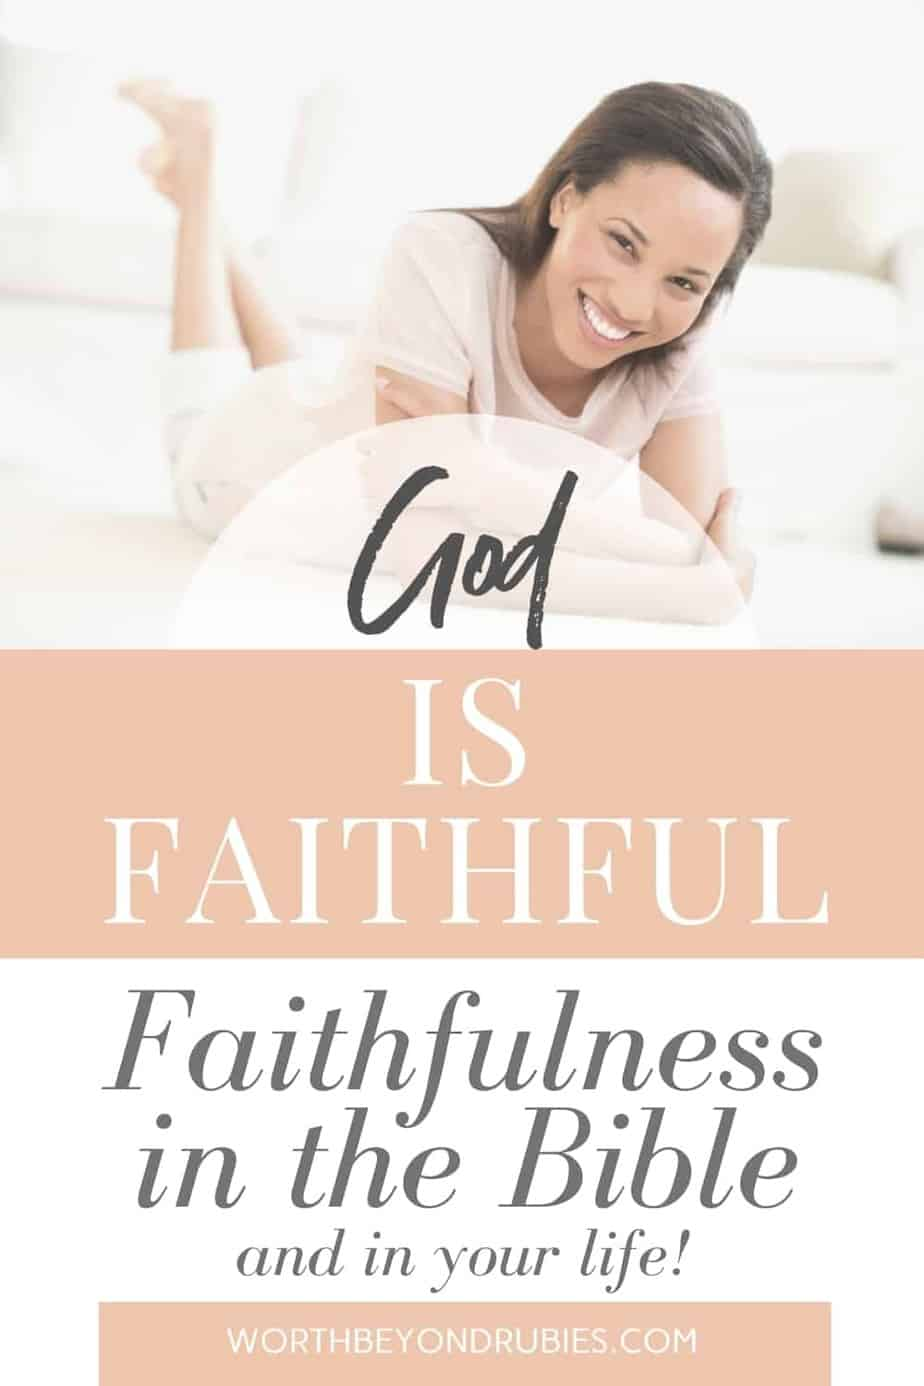 An image of a beautiful black woman lying on the floor smiling at the camera with her legs crossed and bent upward behind her and text that says God is Faithful- Faithfulness in the Bible and in Your Life